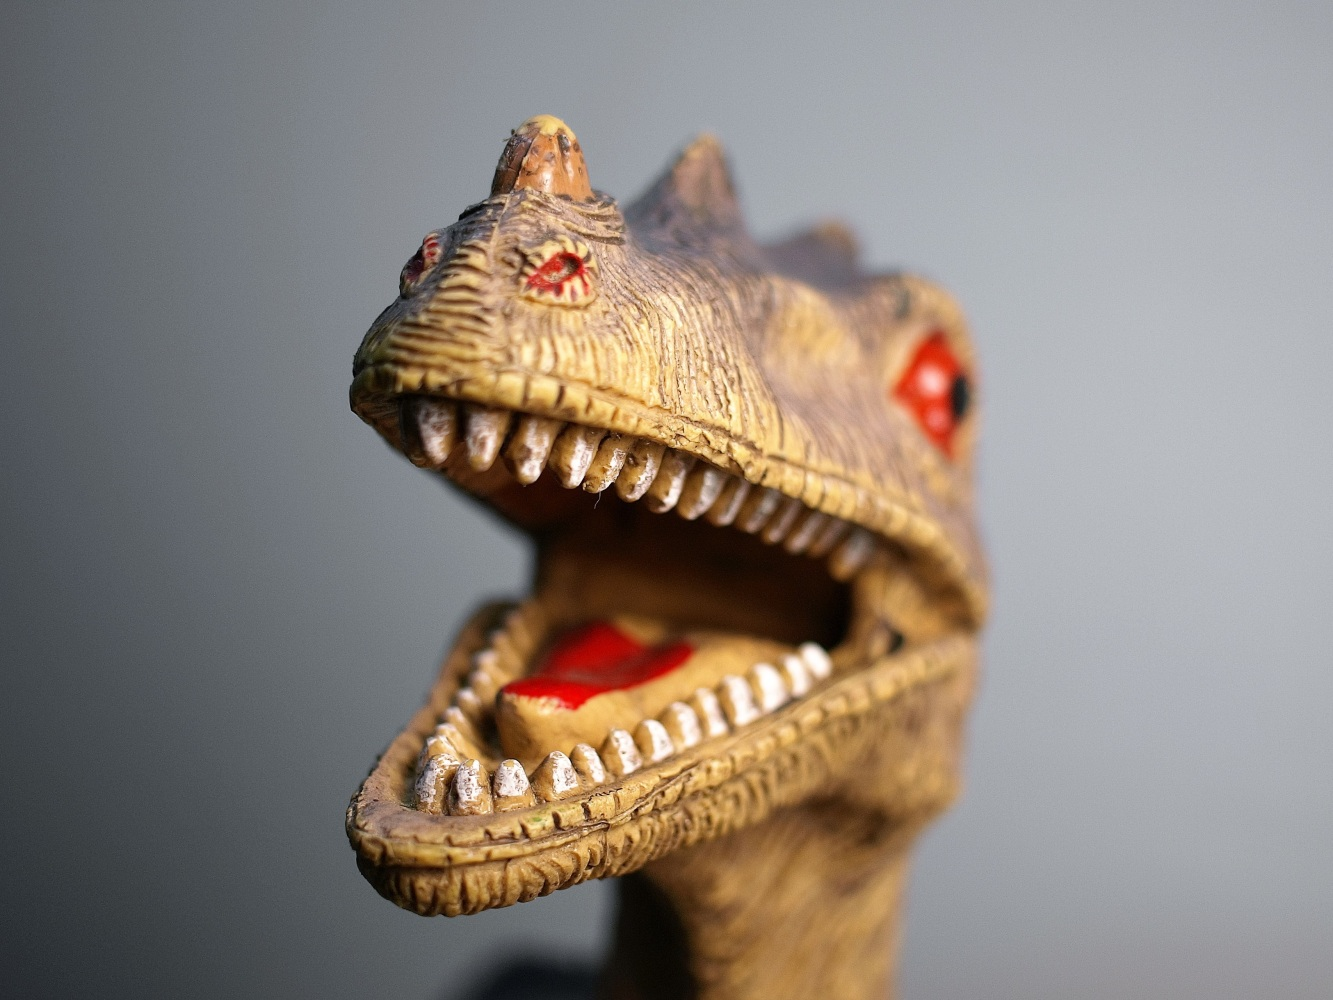 Dinosaur Extinction Now Being Blamed On The Dinosaurs Themselves